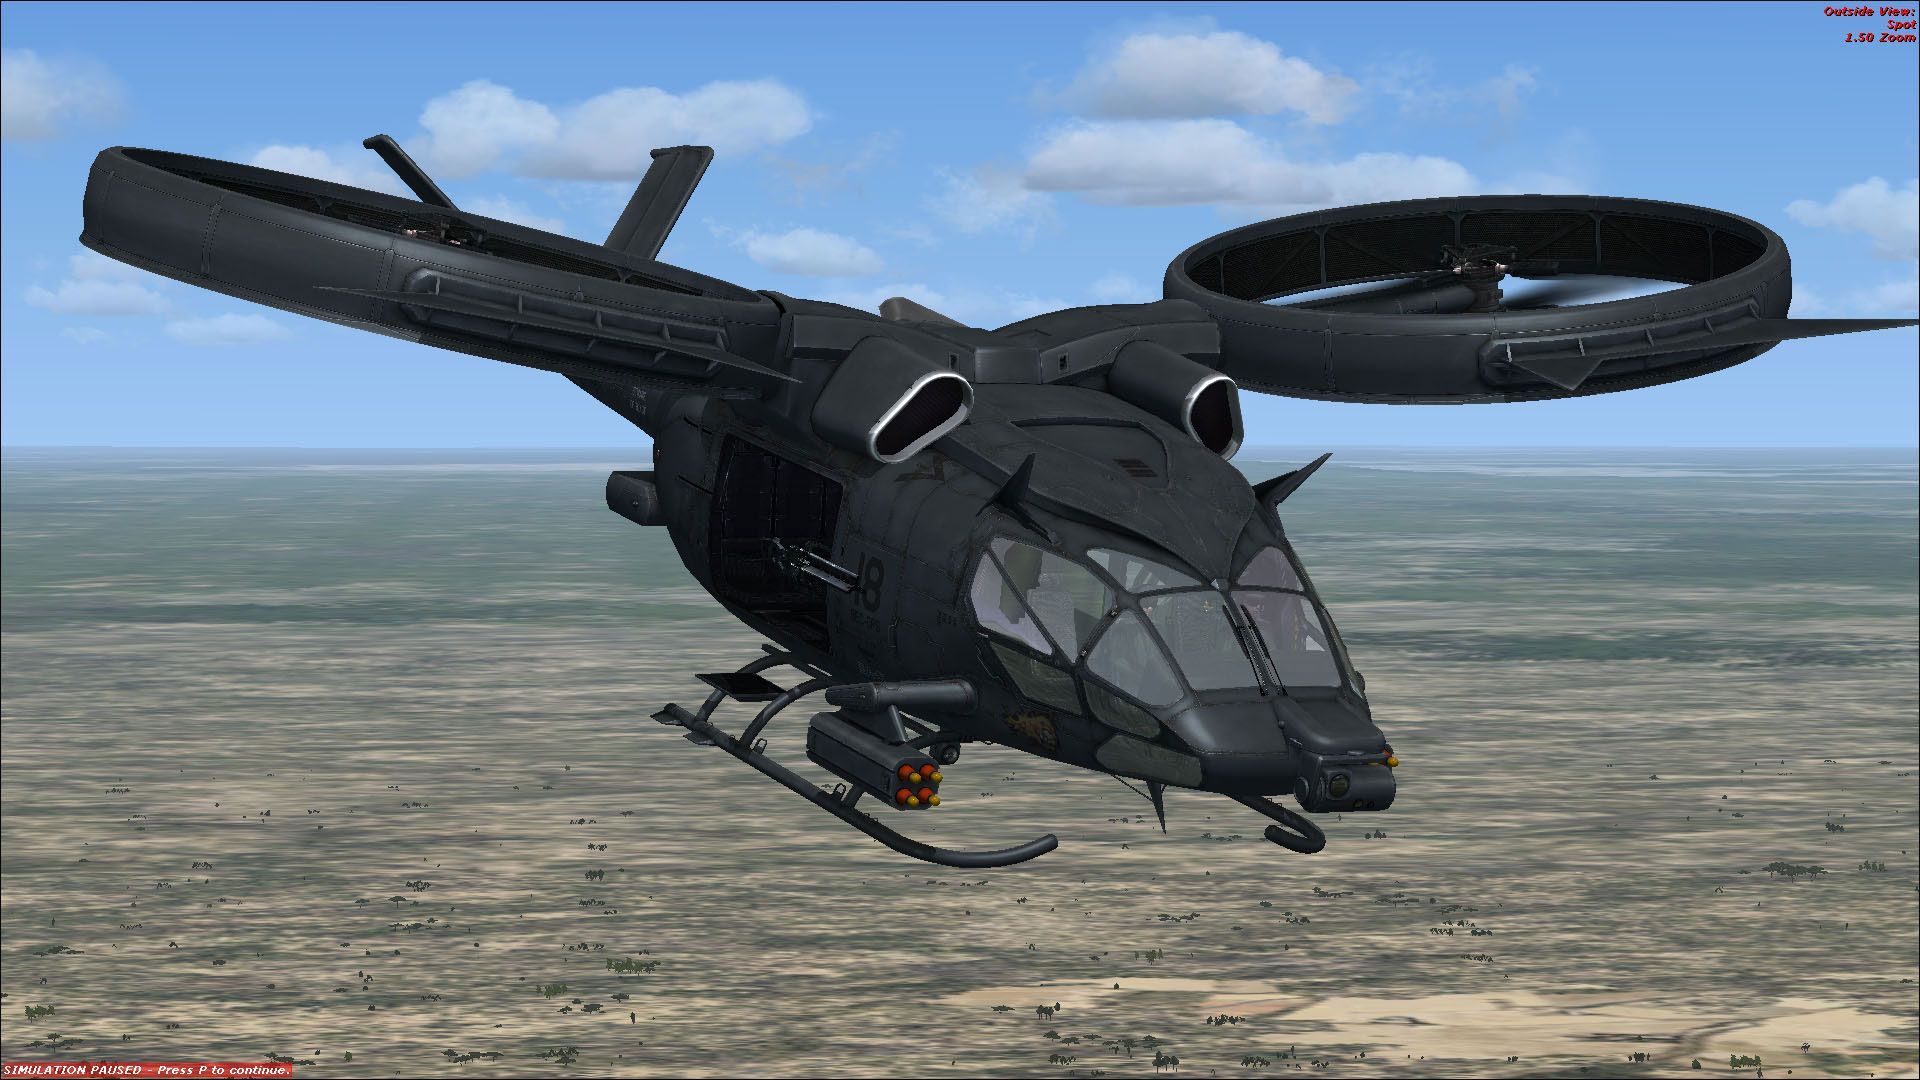 bi rotor helicopter with 320881542180338890 on Page3 also Fuselage Helicoptere C107 518 65 moreover Watch besides 29053 moreover Helicoptere Rc C107.